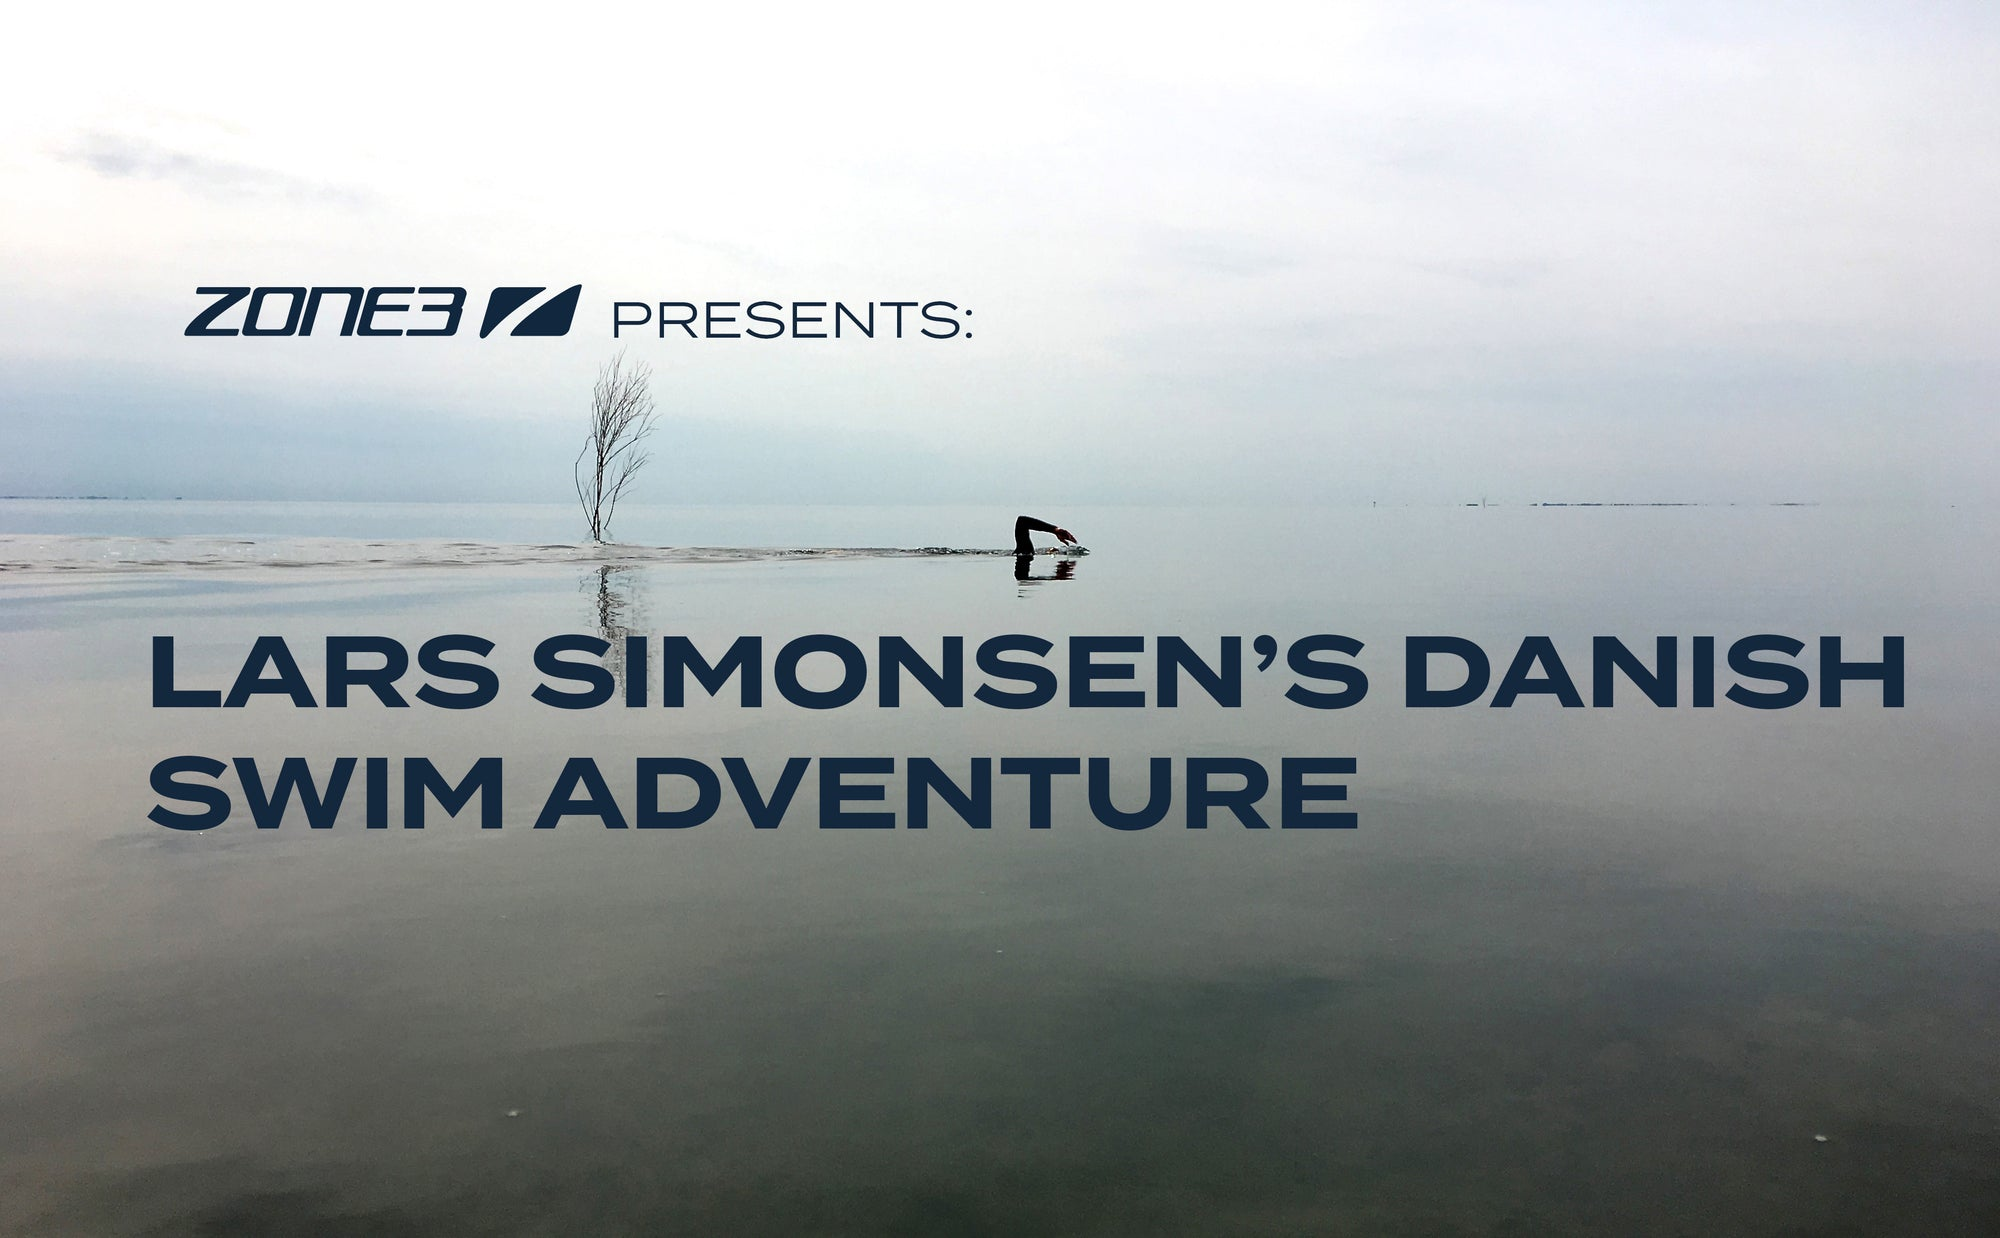 Lars Simonsen Swims Around the Entire Perimeter of Denmark